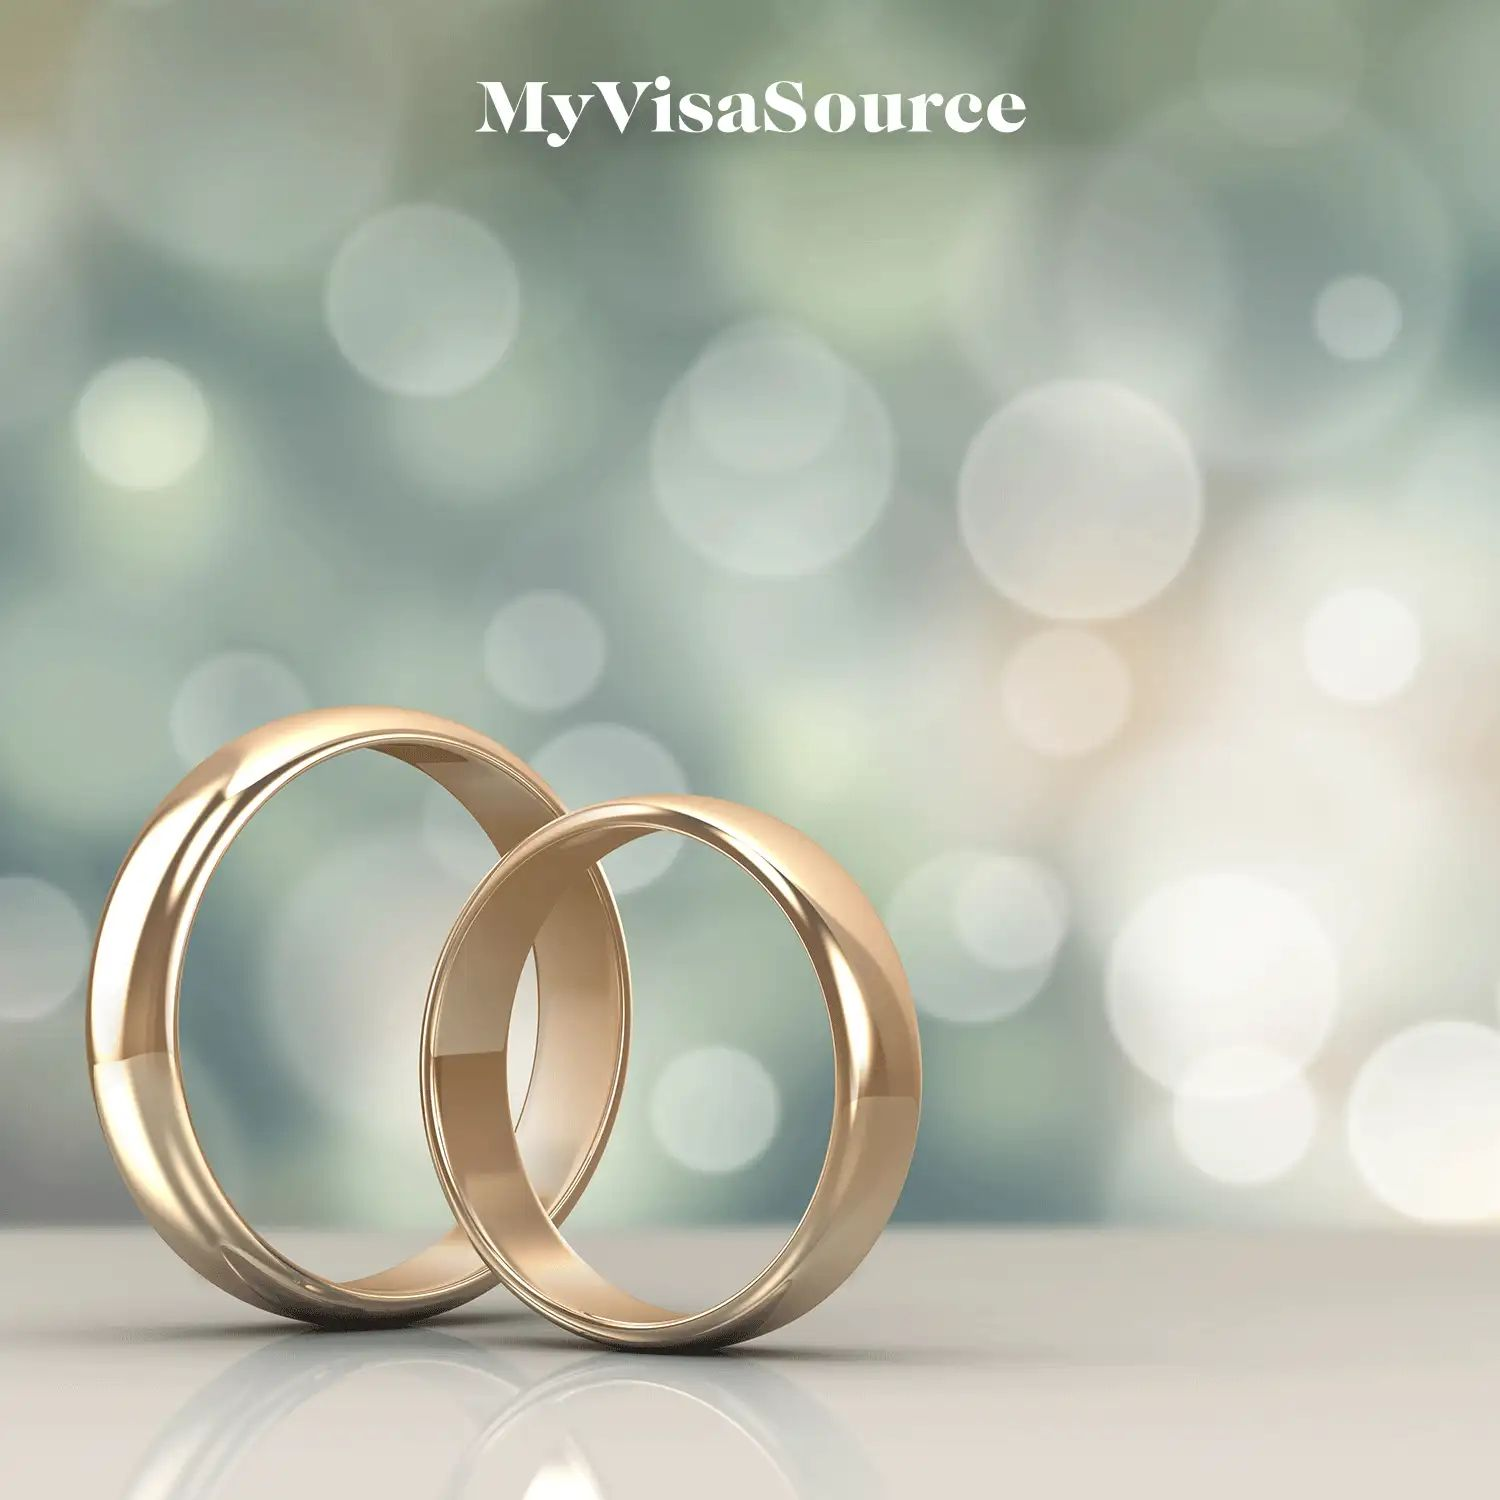 male-and-female-wedding-rings-standing-up-with-blurry-background-with-circles-by-my-visa-source